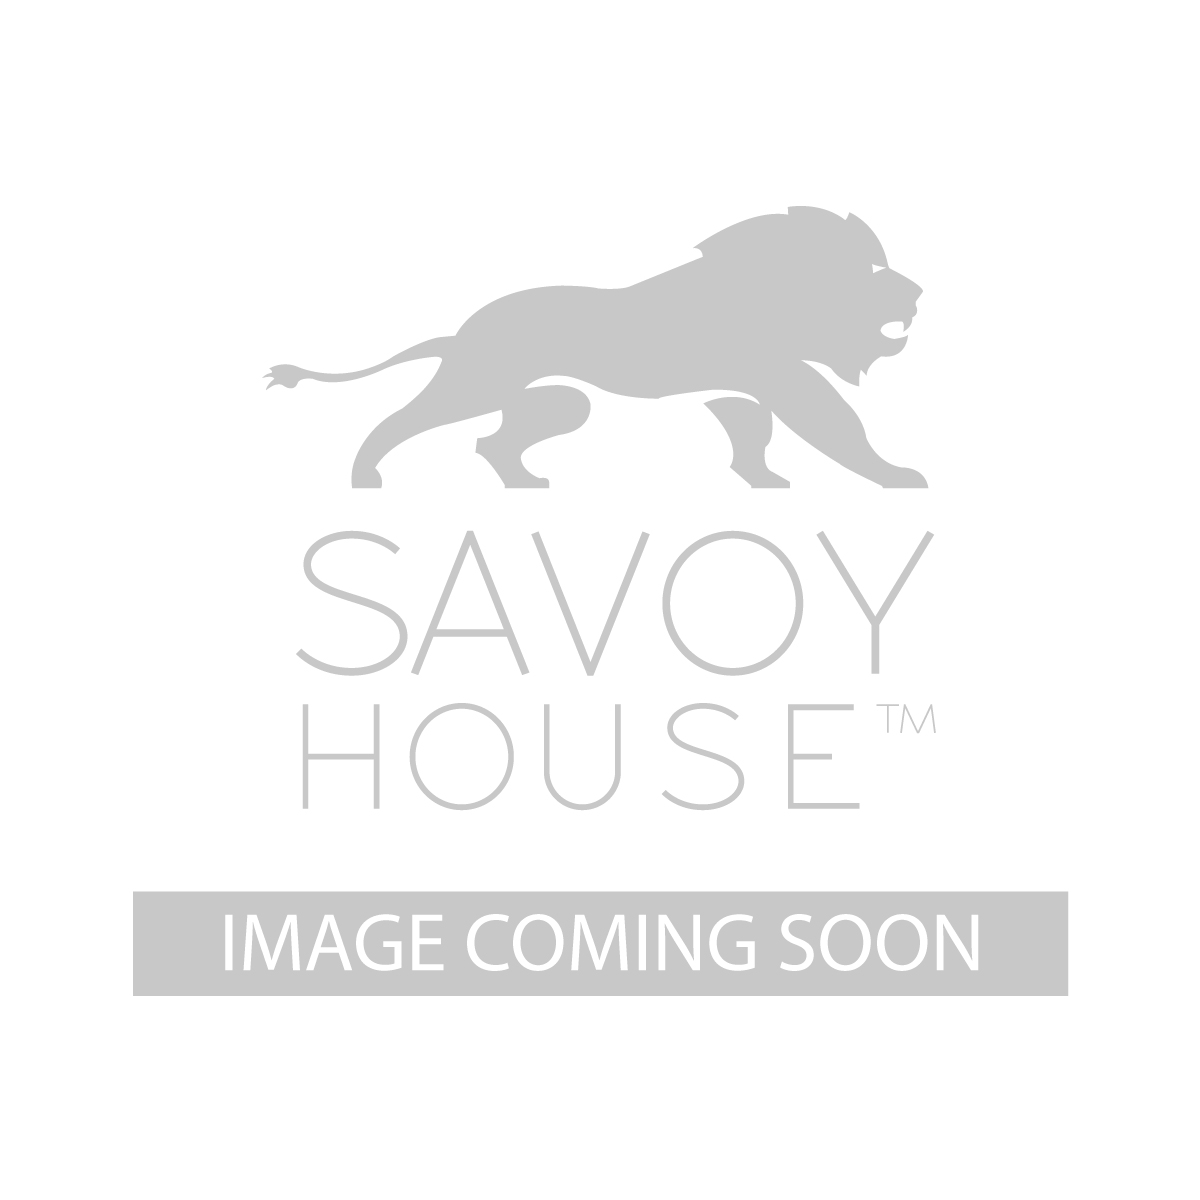 1 2100 6 70 eden 6 light outdoor chandelier by savoy house for Savoy house com